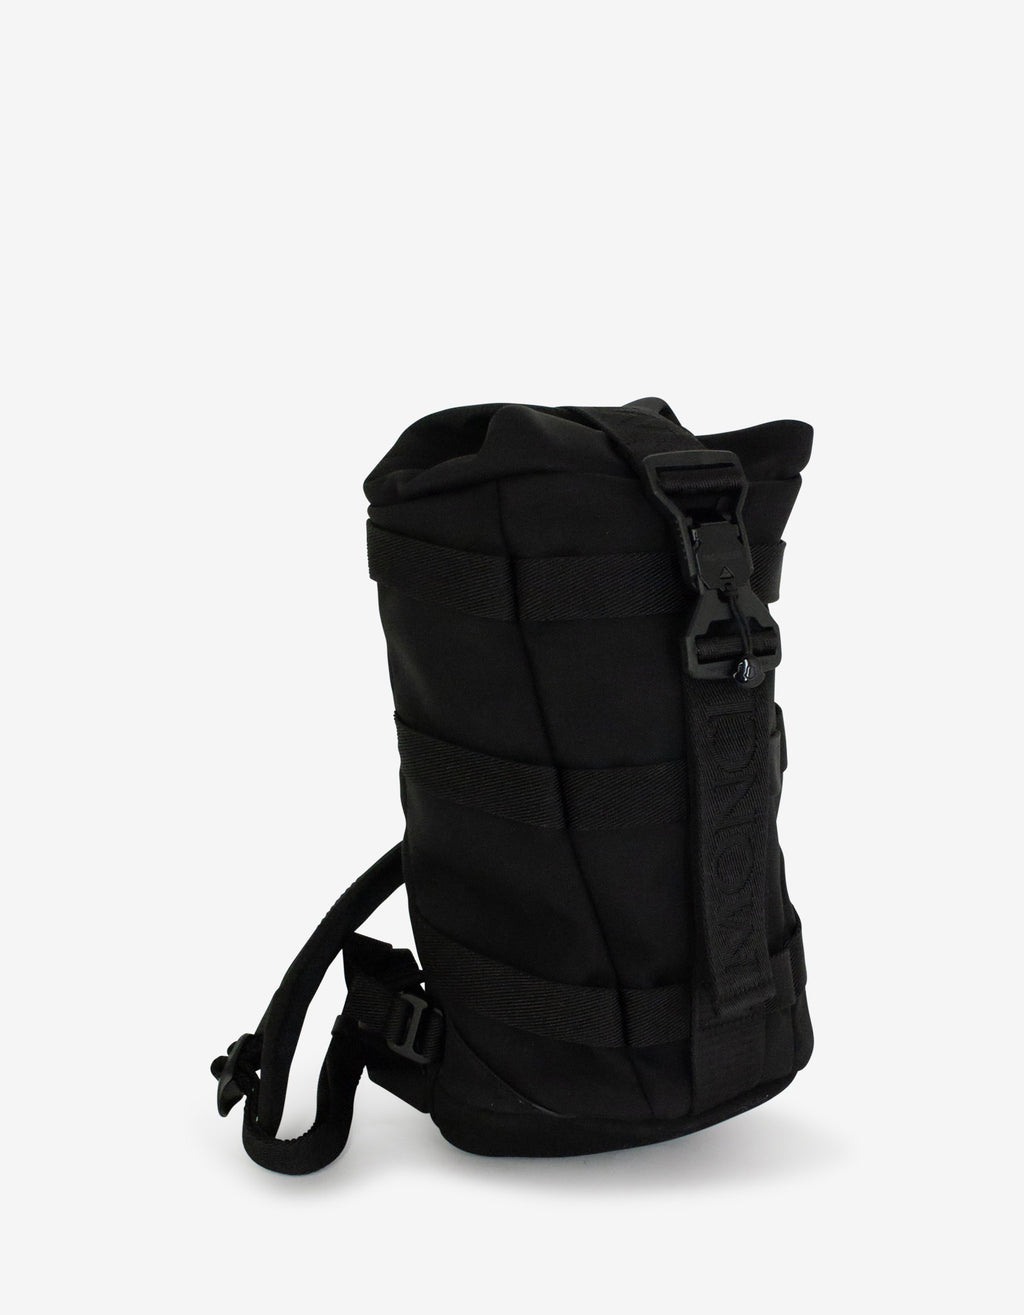 Argens Black Nylon Sling Backpack